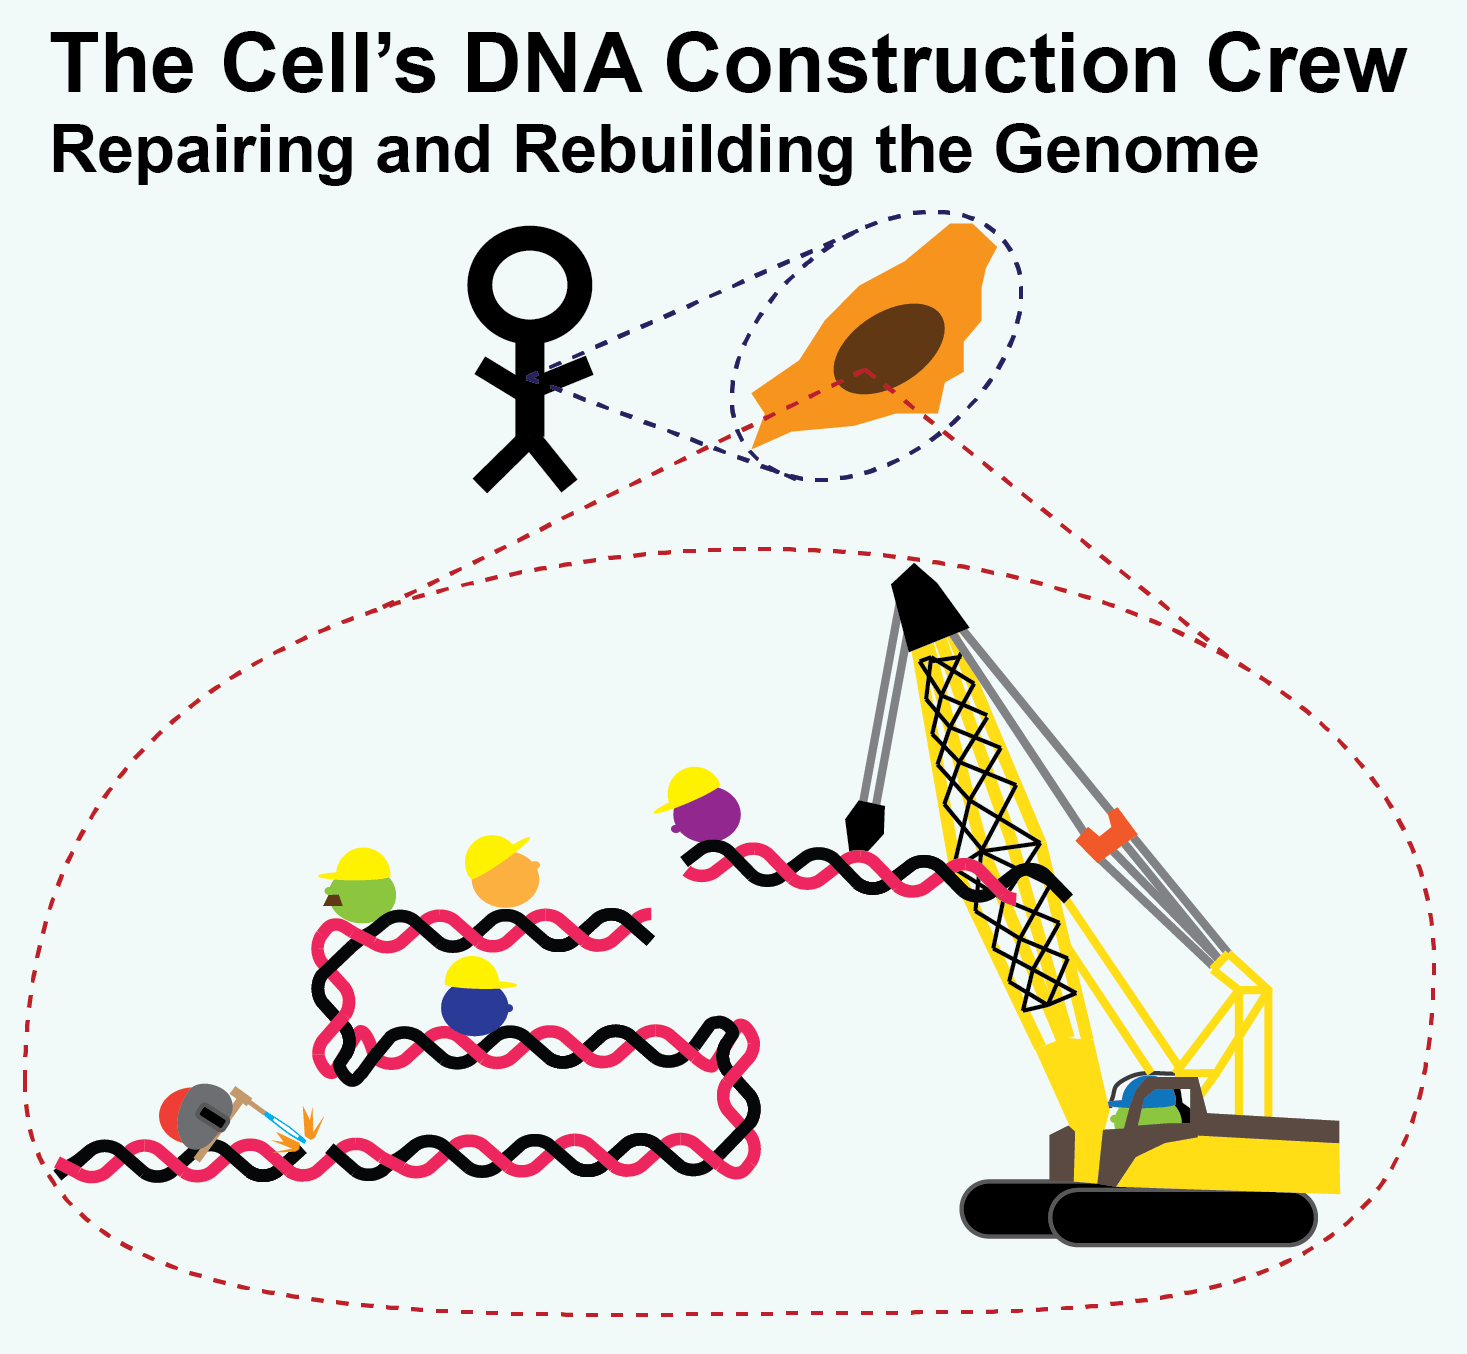 Construction Repair The Cell S Dna Construction Crew Repairing And Rebuilding The